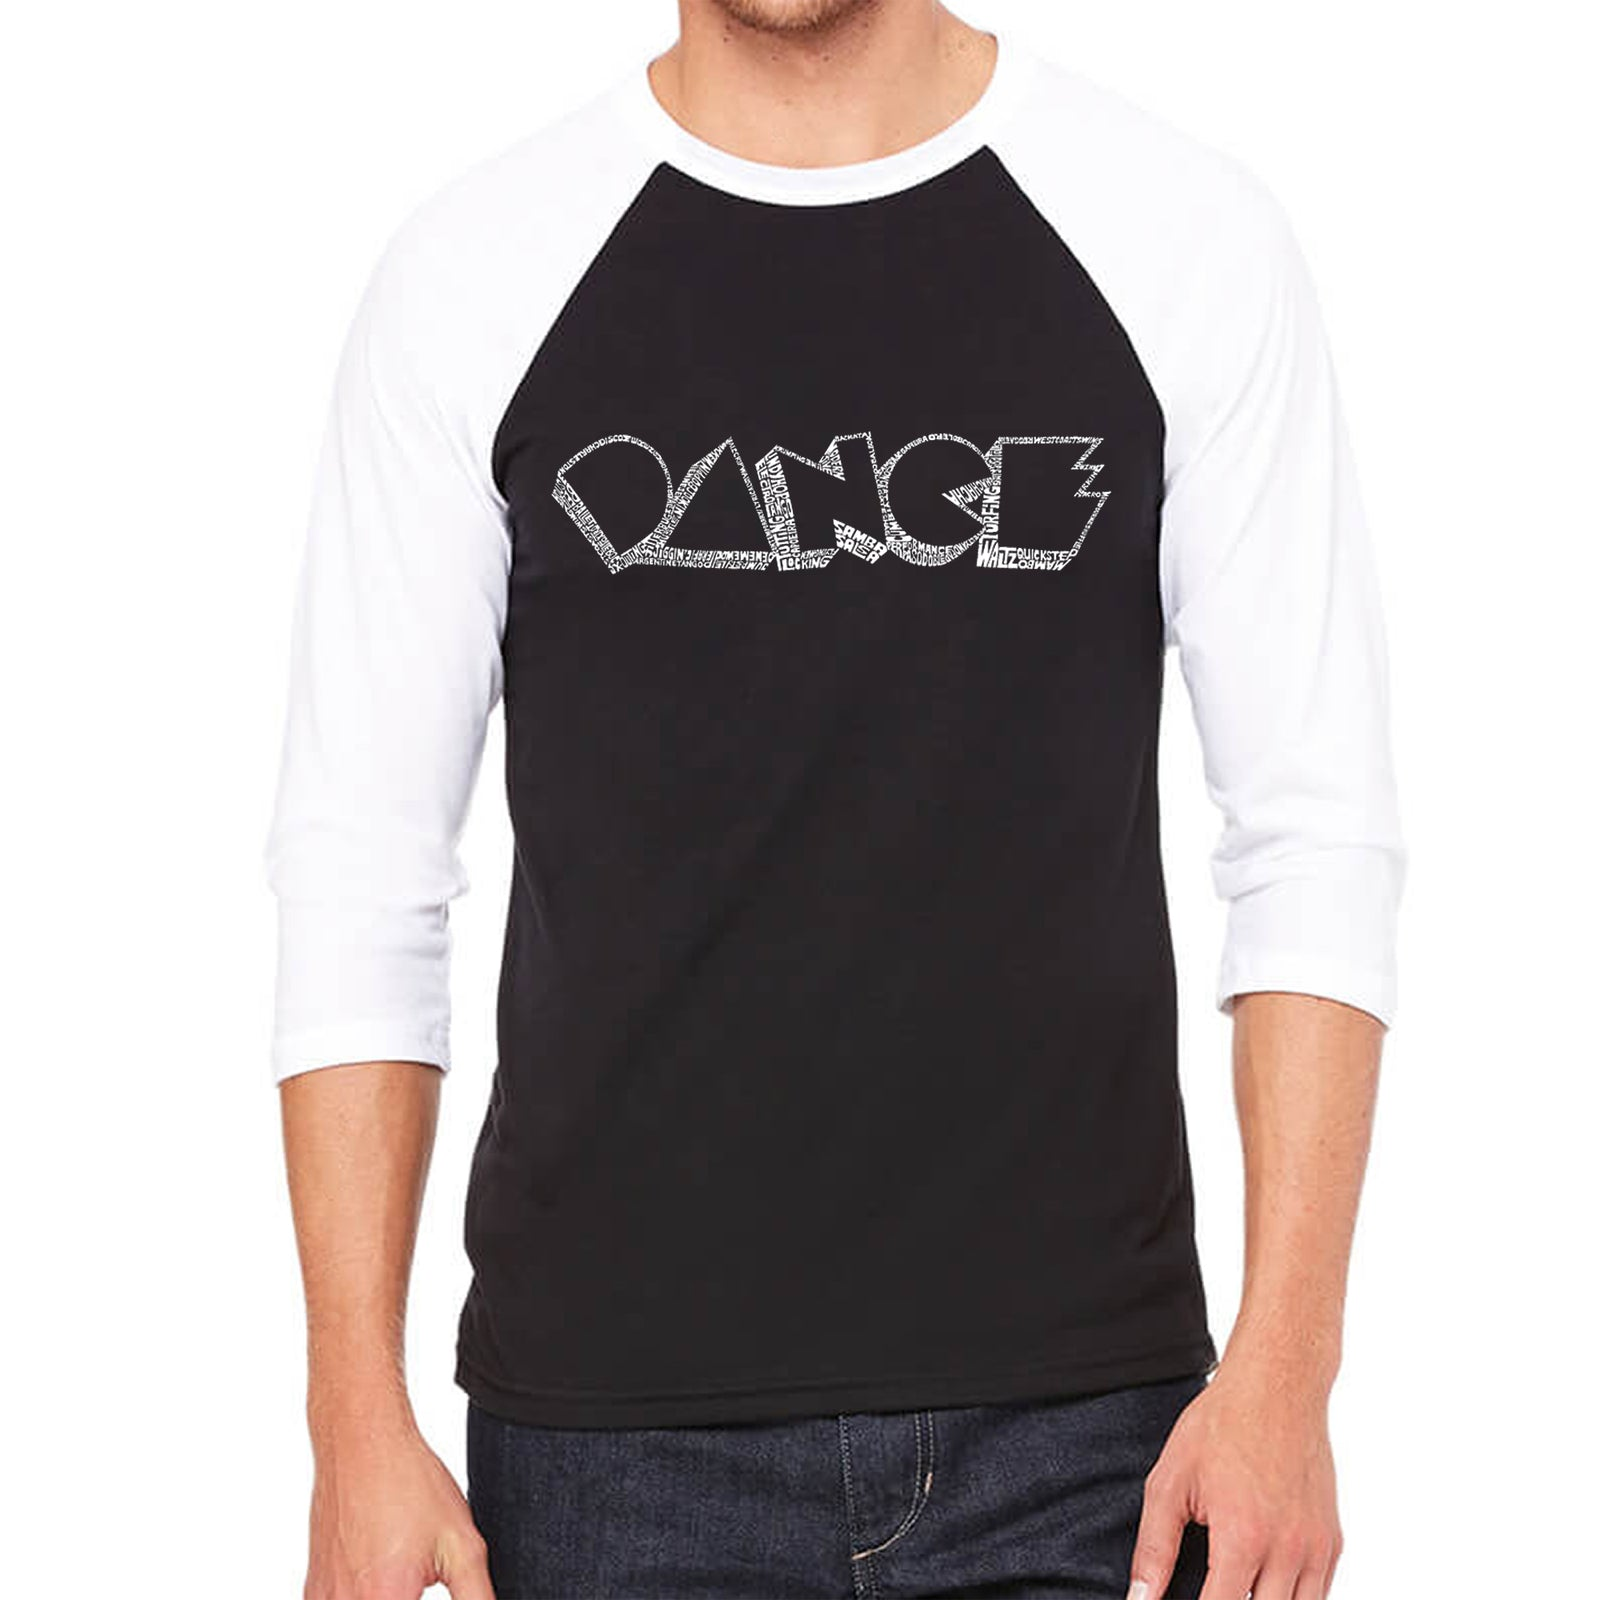 Men's Raglan Baseball Word Art T-shirt - DIFFERENT STYLES OF DANCE